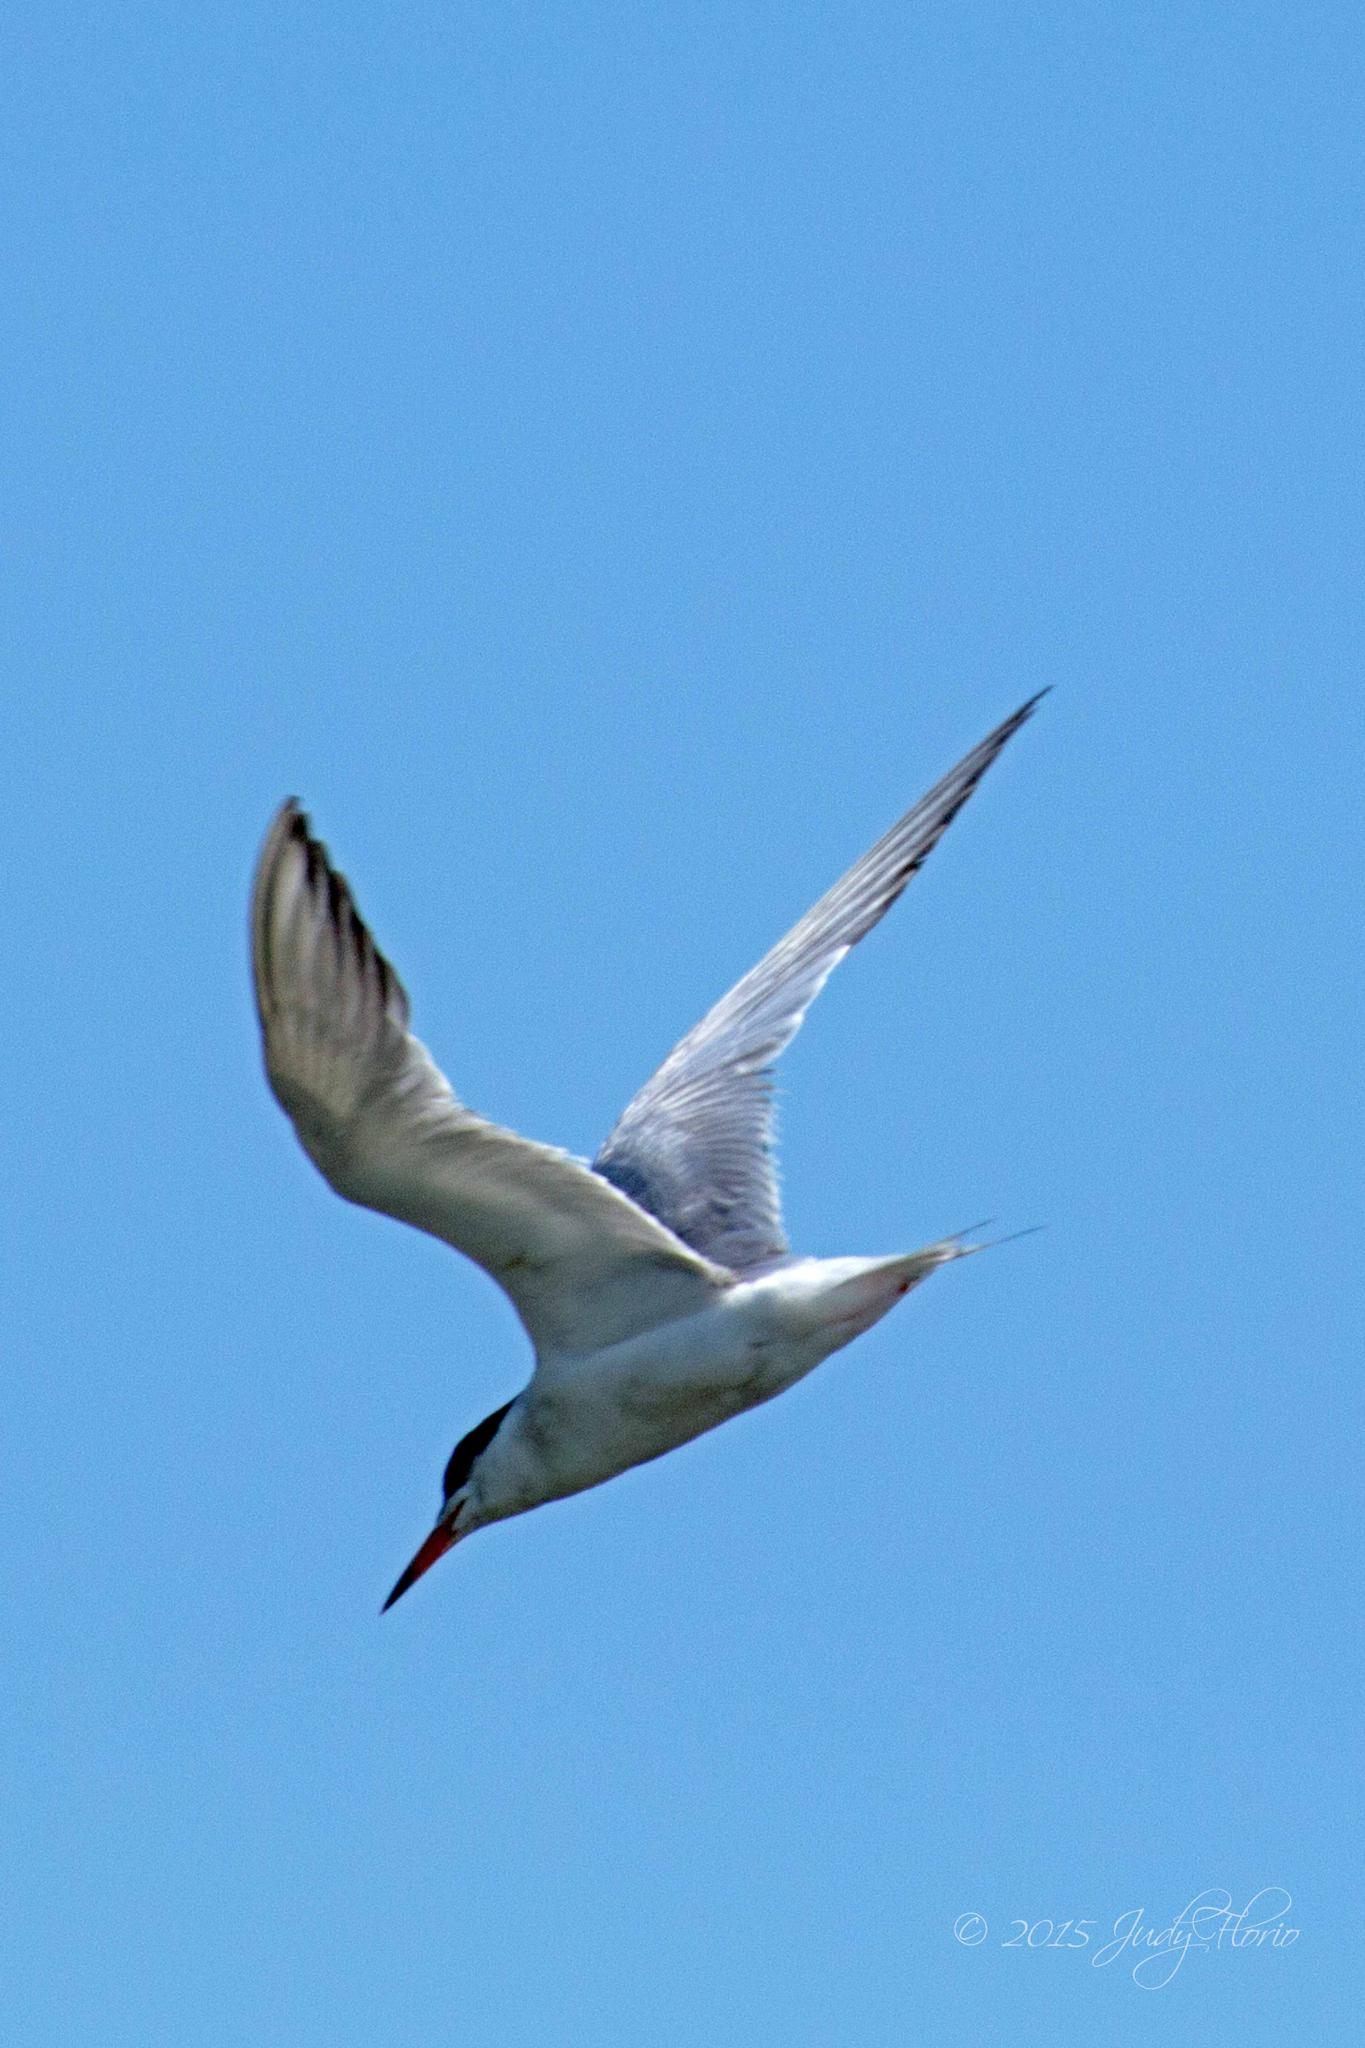 Diving tern by Judy Florio